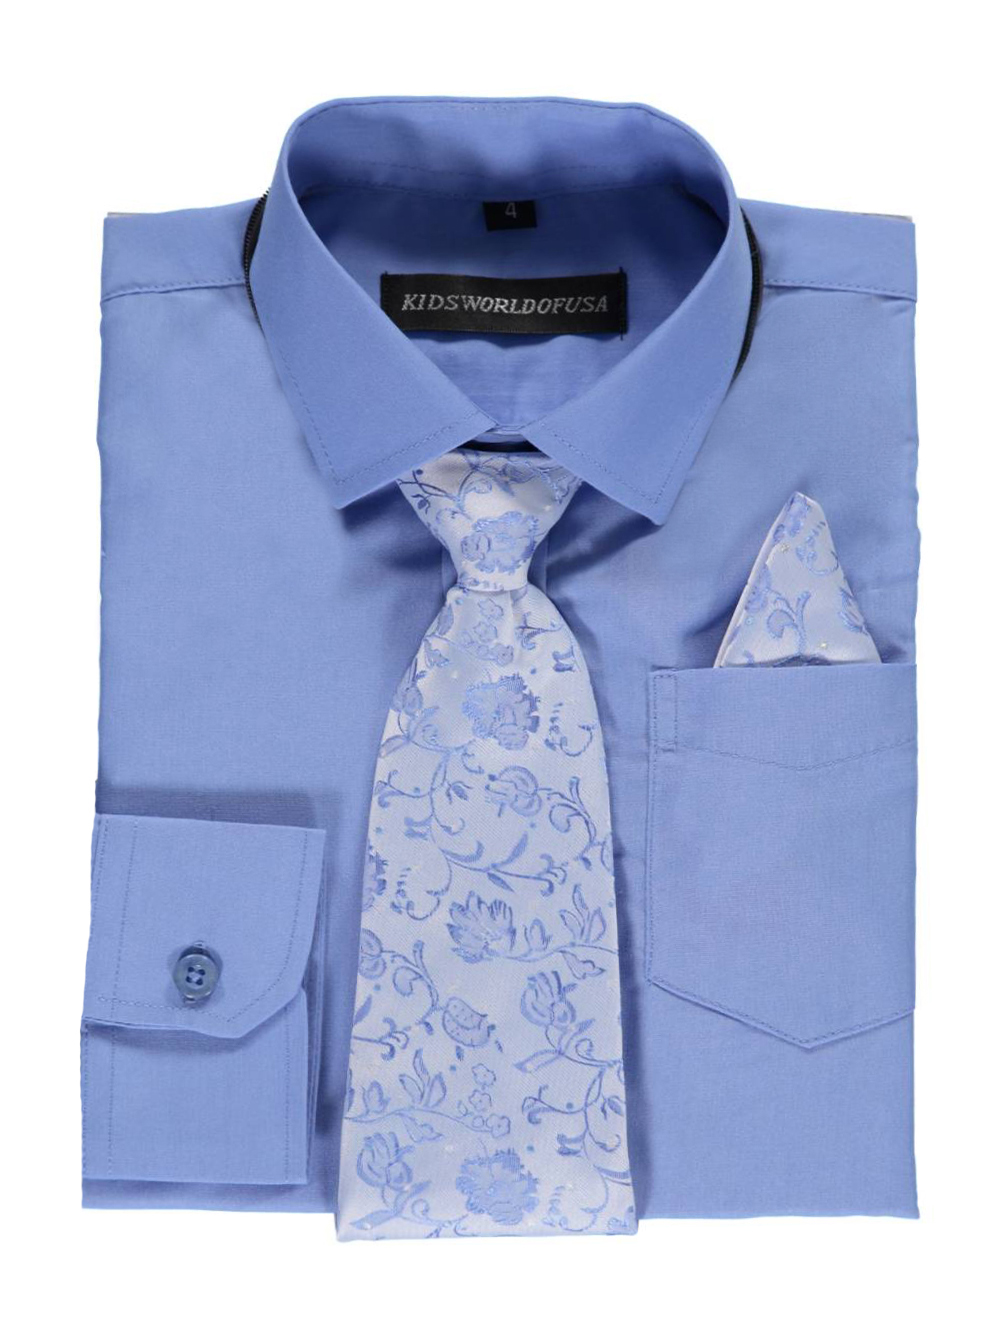 Kids World Little Boys' Dress Shirt with Accessories (Sizes 4 - 7) - blue, 6